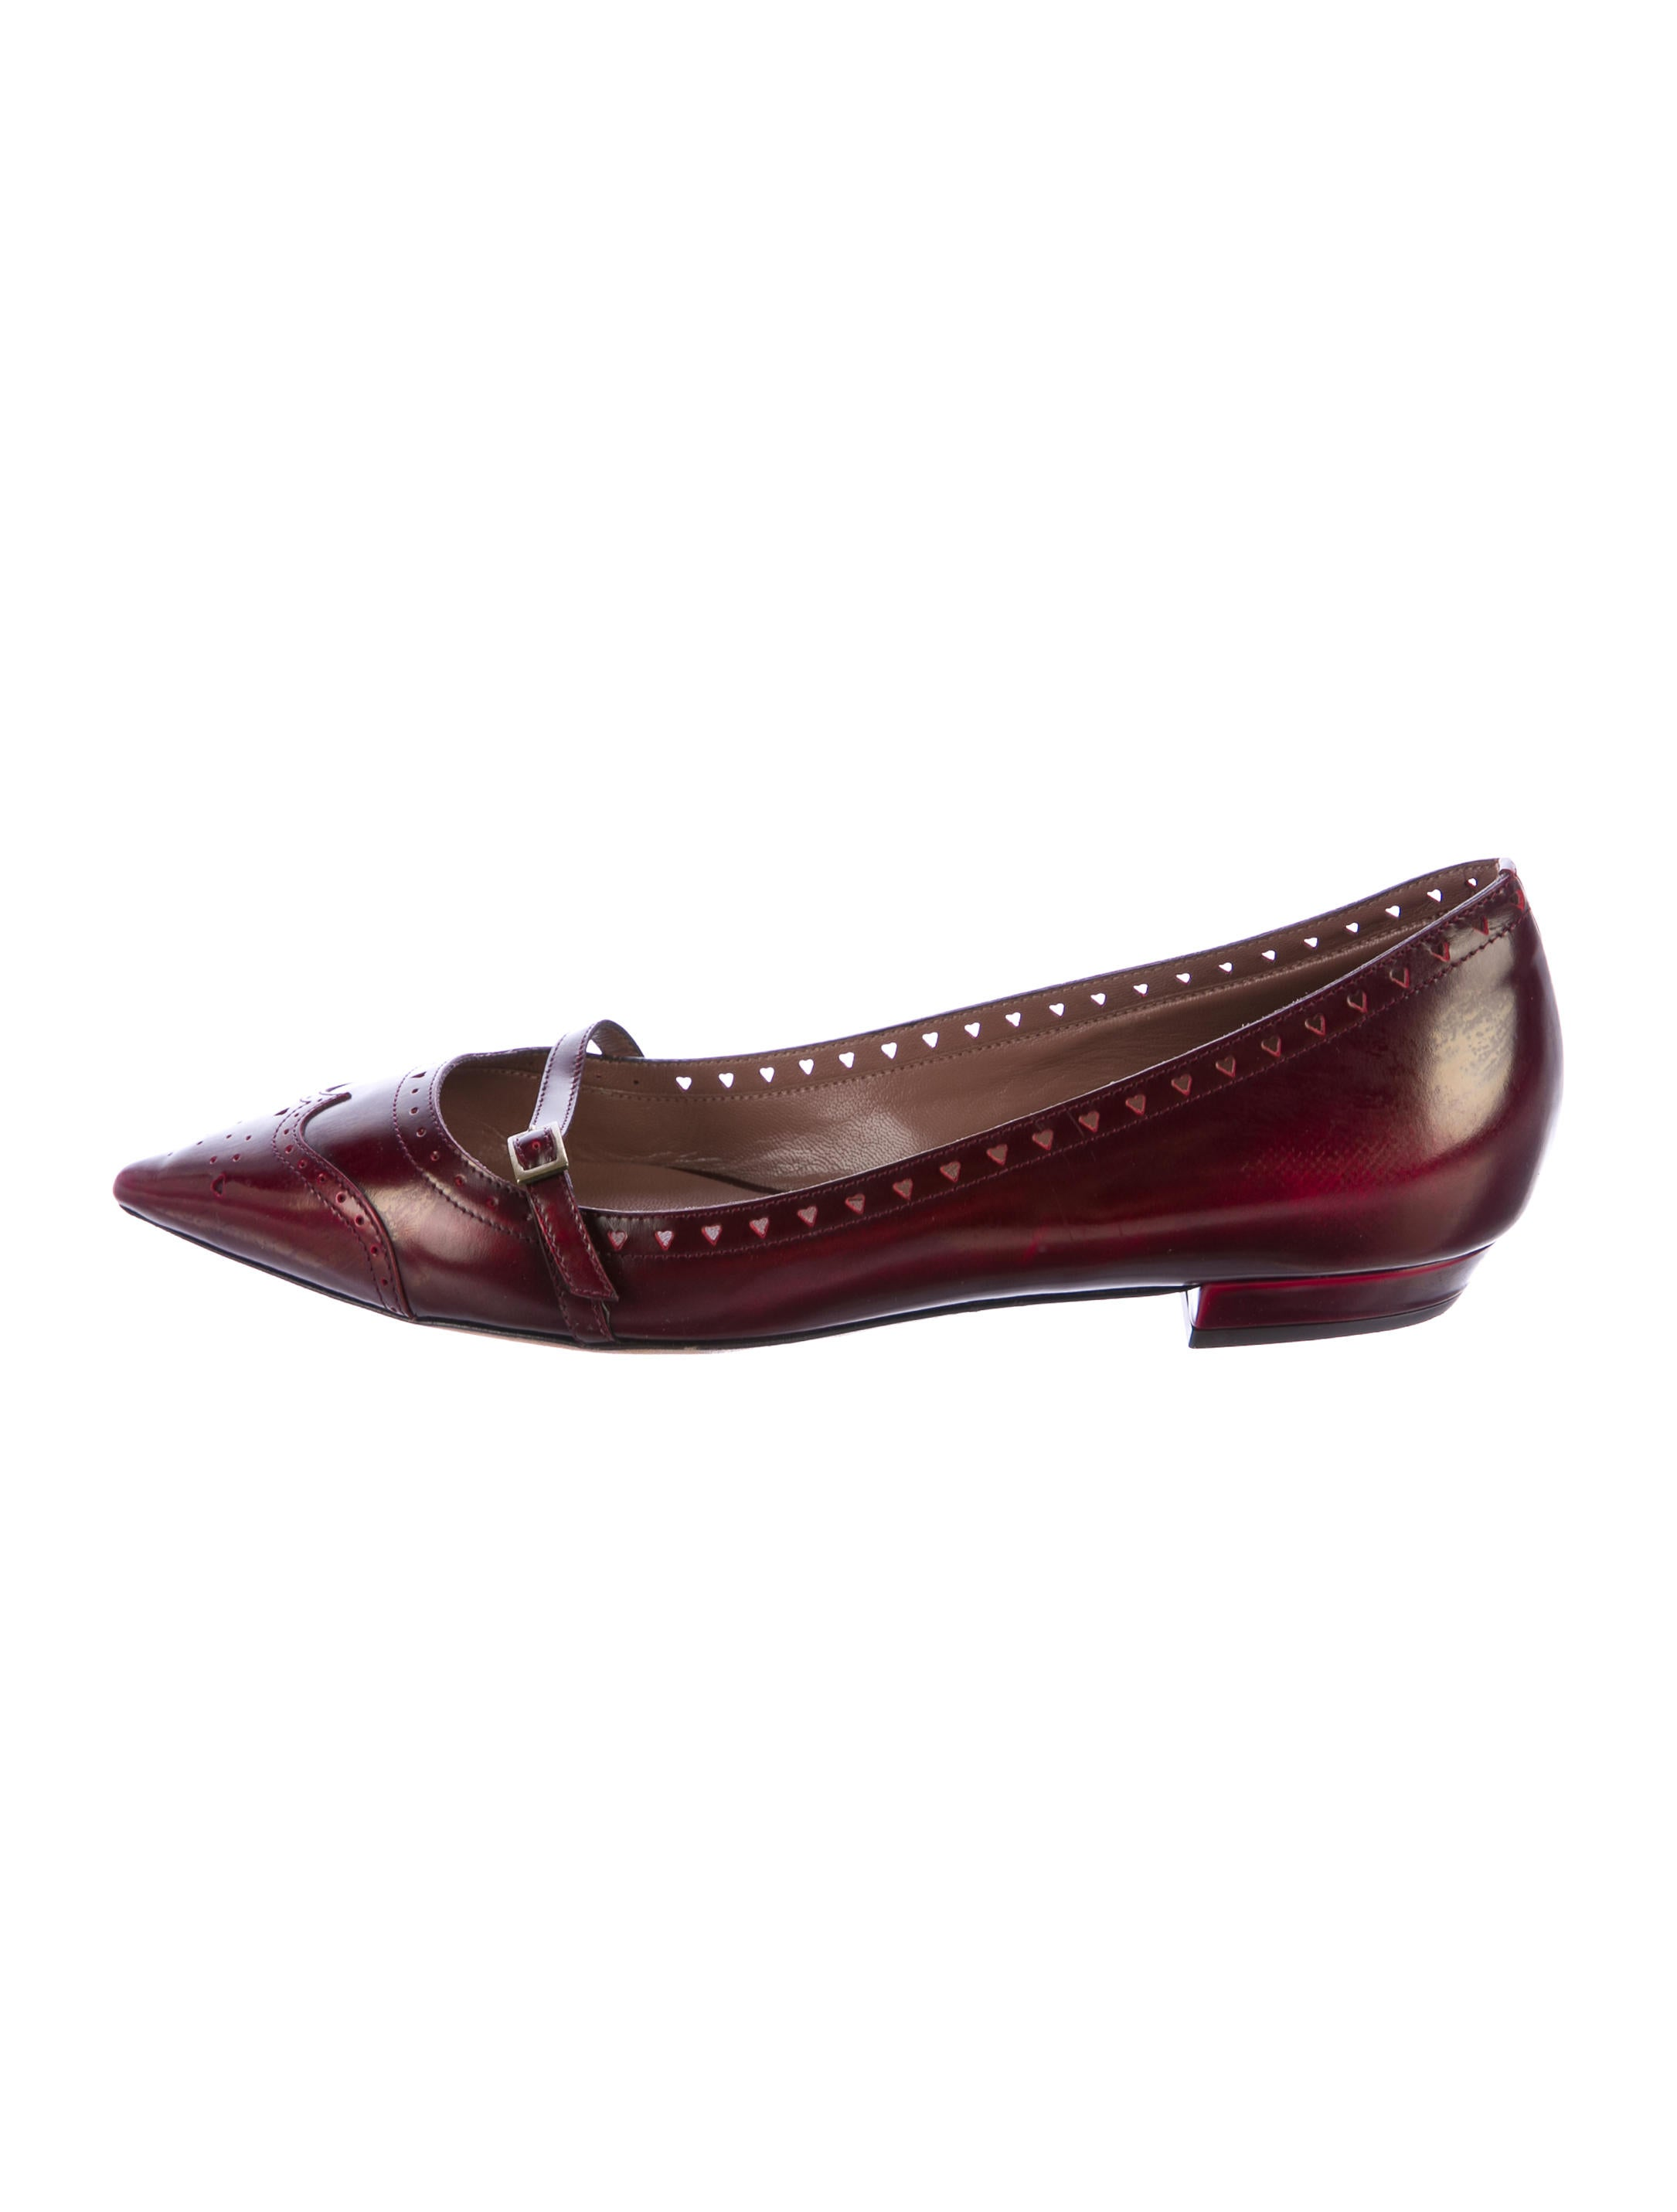 Tabitha Simmons Belfy Brogue Flats clearance wide range of great deals cheap price buy cheap price cheap eastbay elbv8g